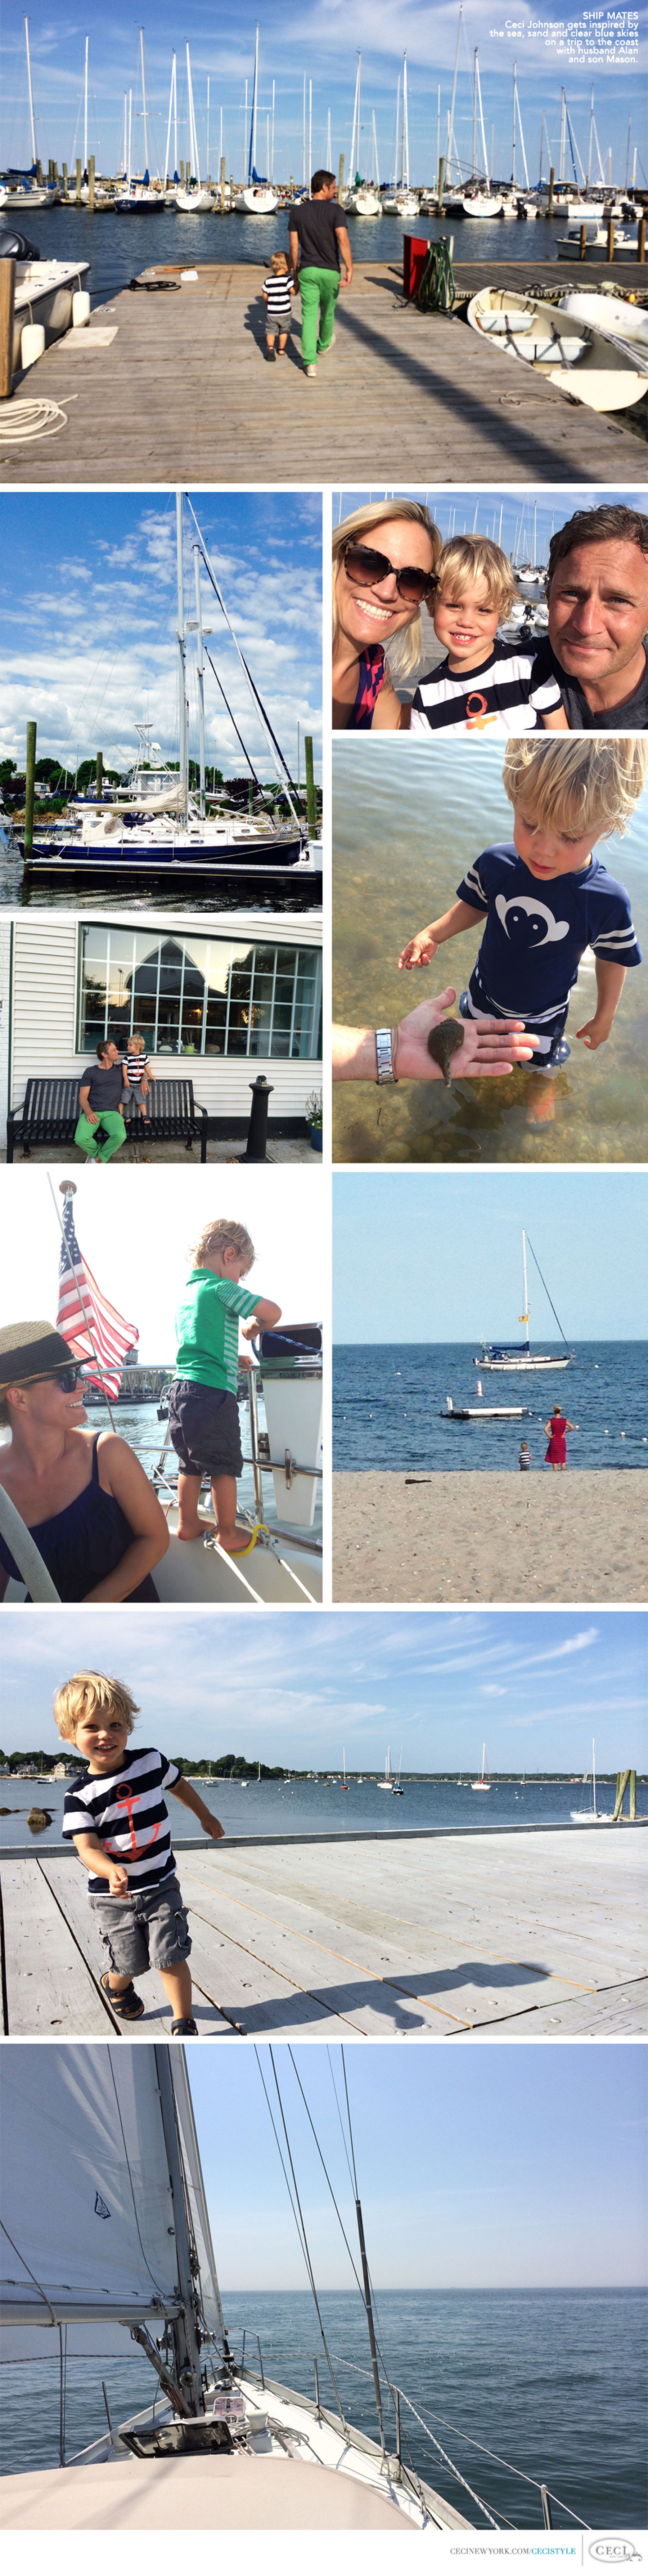 Ceci Johnson of Ceci New York - SHIP MATES: Ceci Johnson gets inspired by the sea, sand and clear blue skies on a trip to the coast with husband Alan and son Mason.